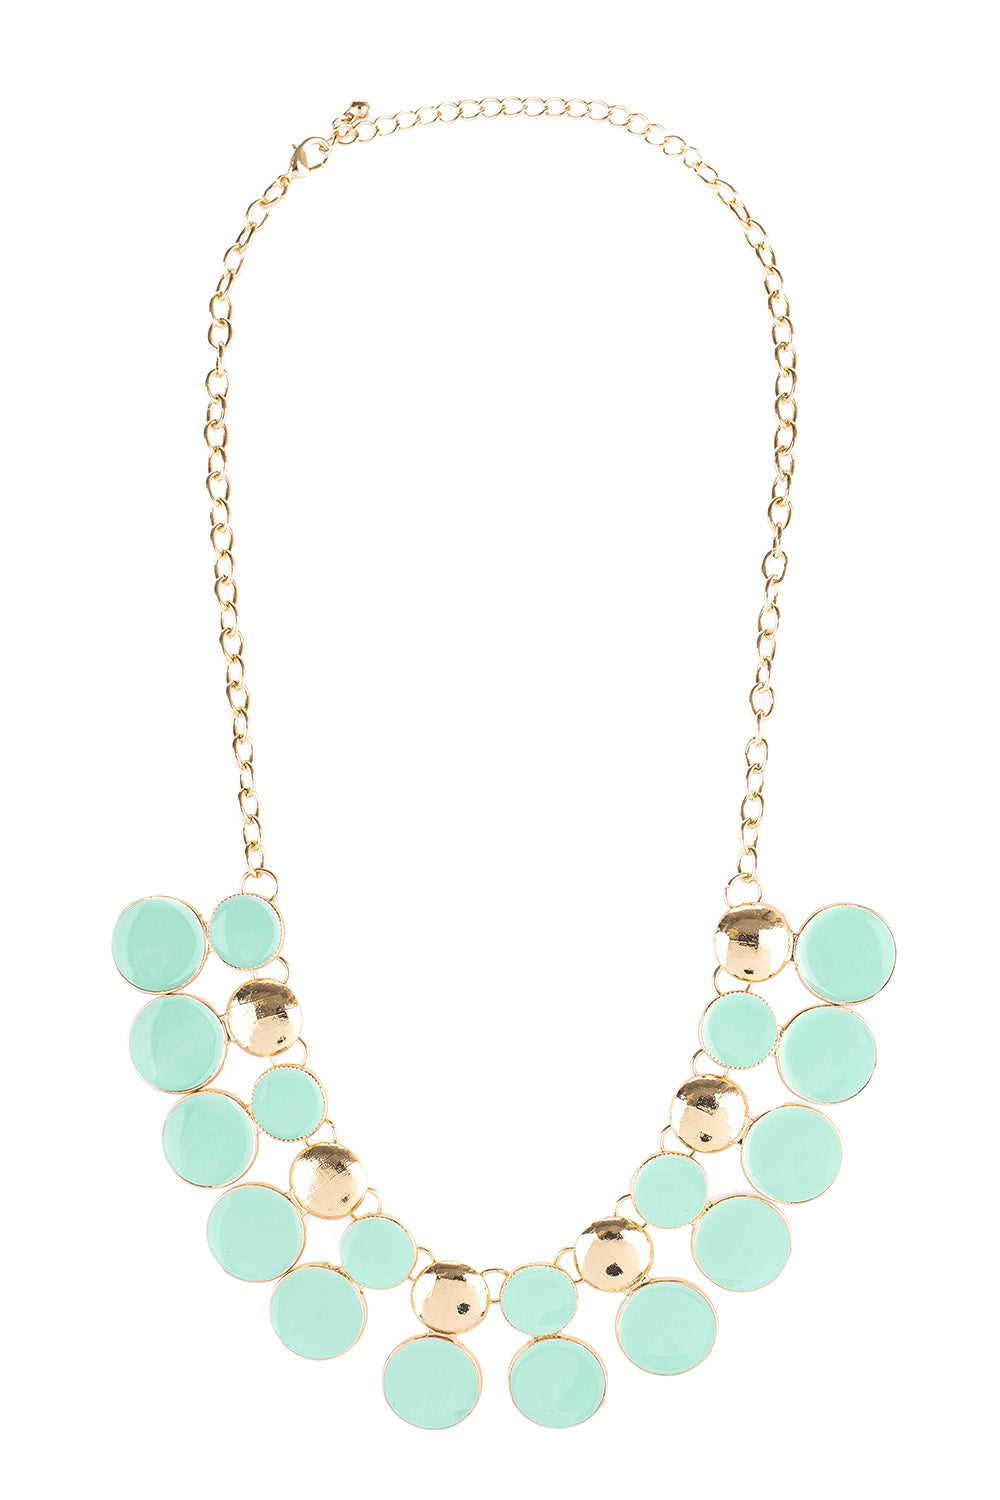 Type 1 Minty Fresh Necklace